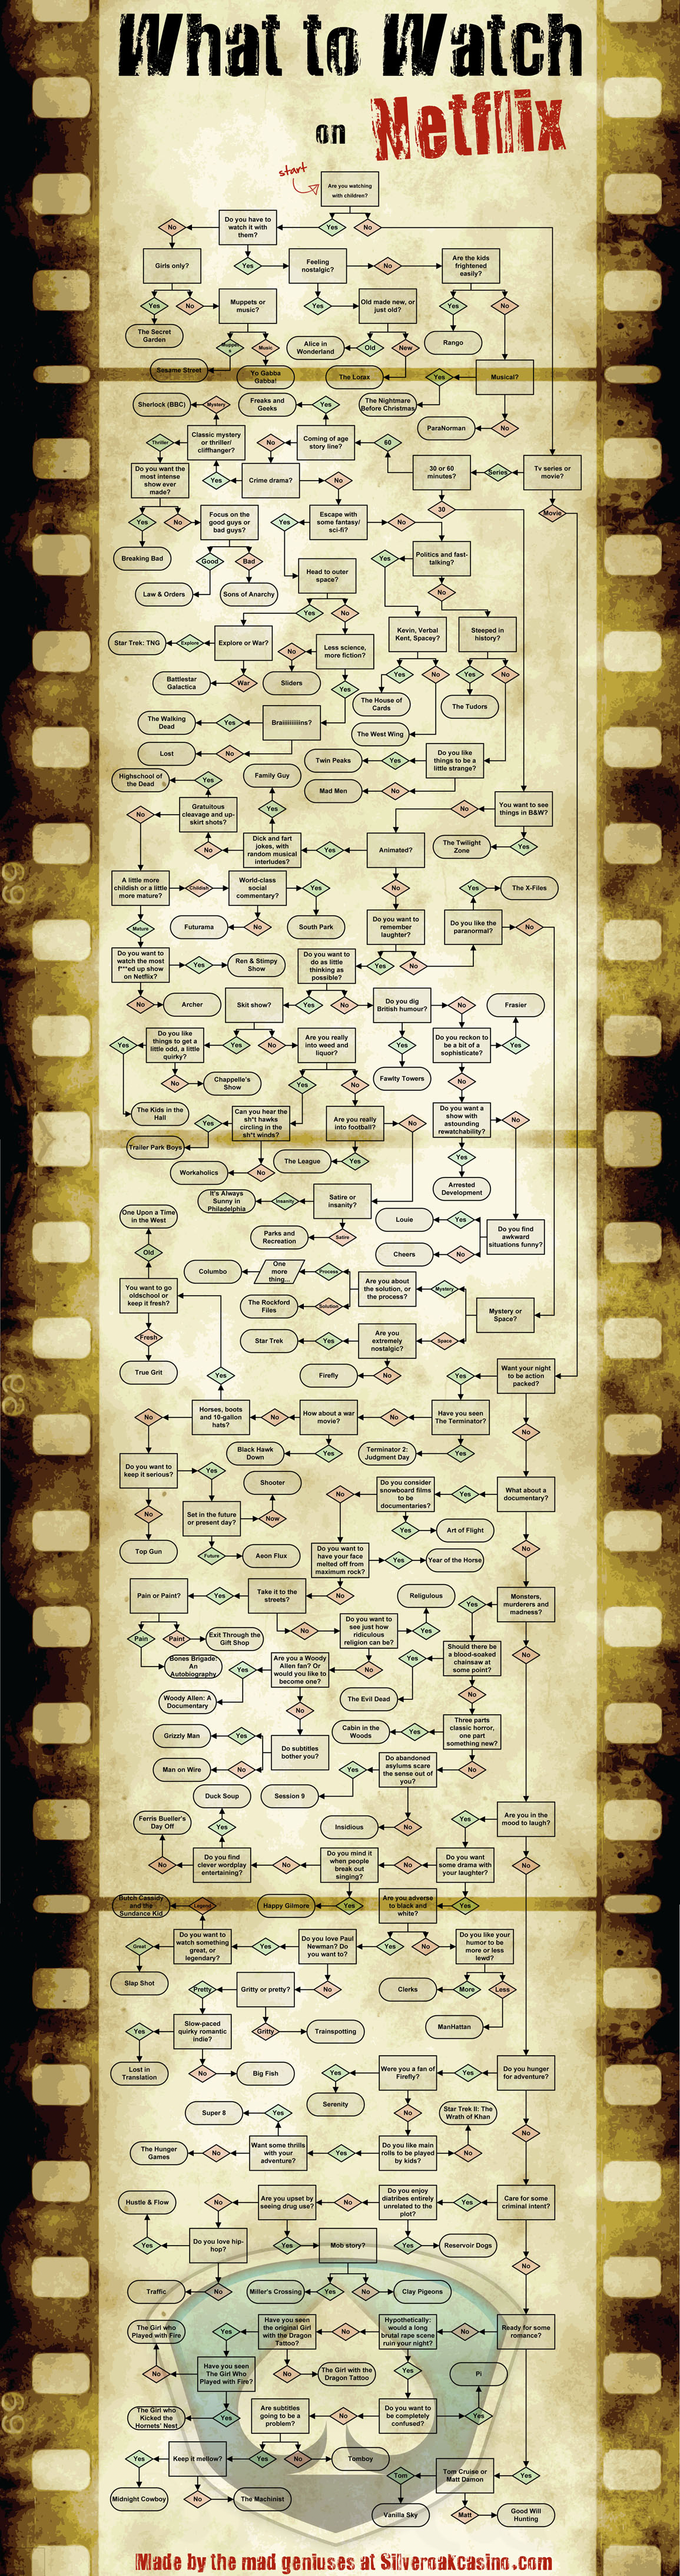 Extreme Guide: What To Watch On Netflix [Flowchart]